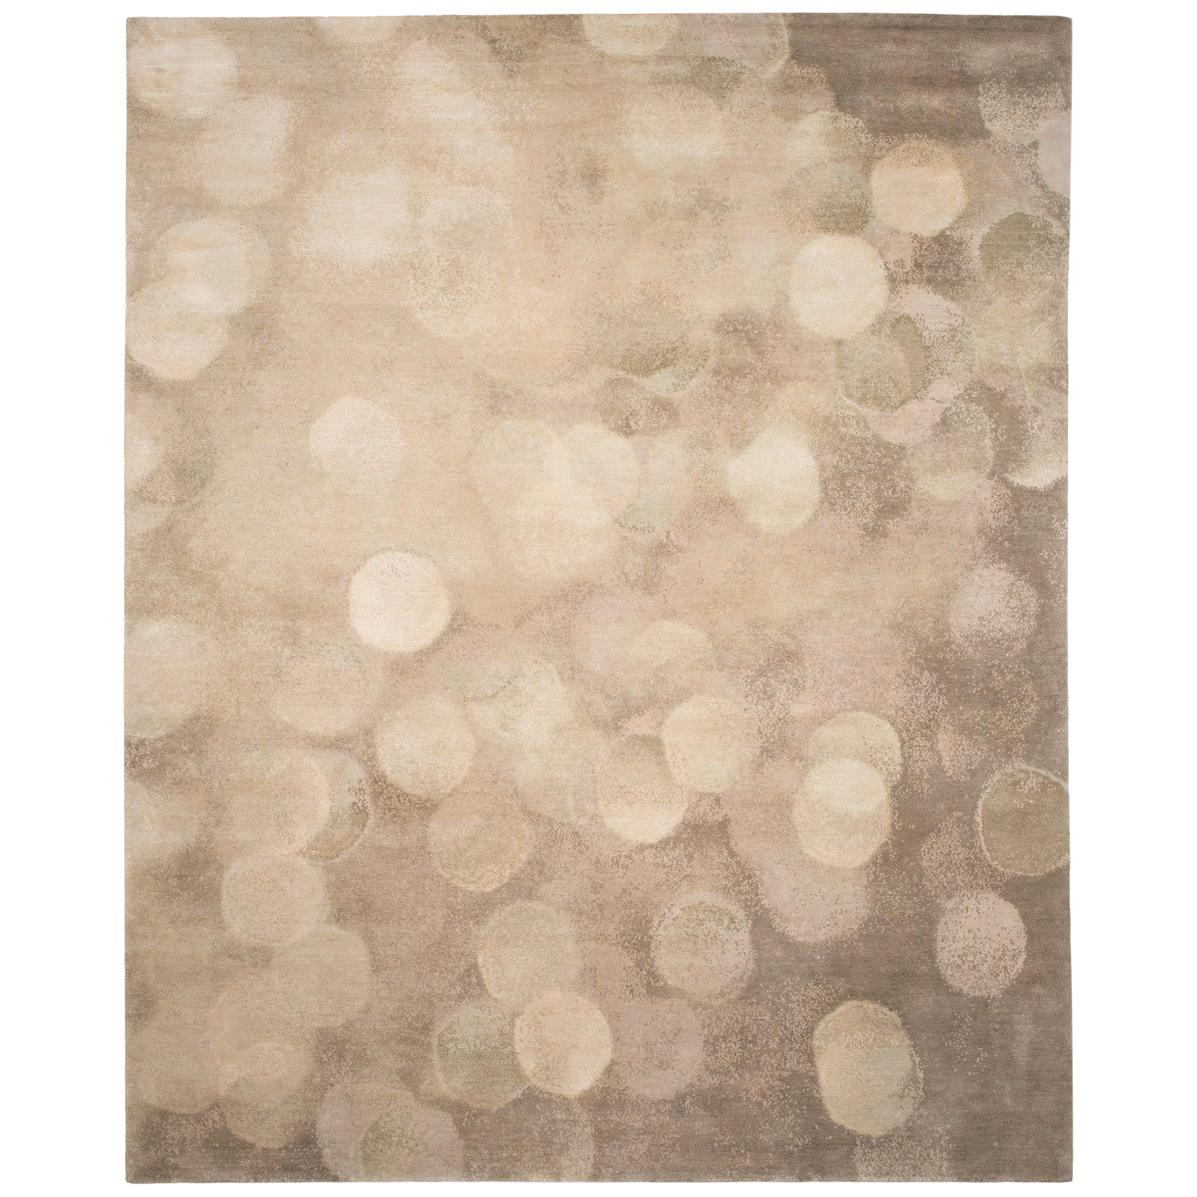 Iseo from the Spectrum Carpet Collection by Jan Kath